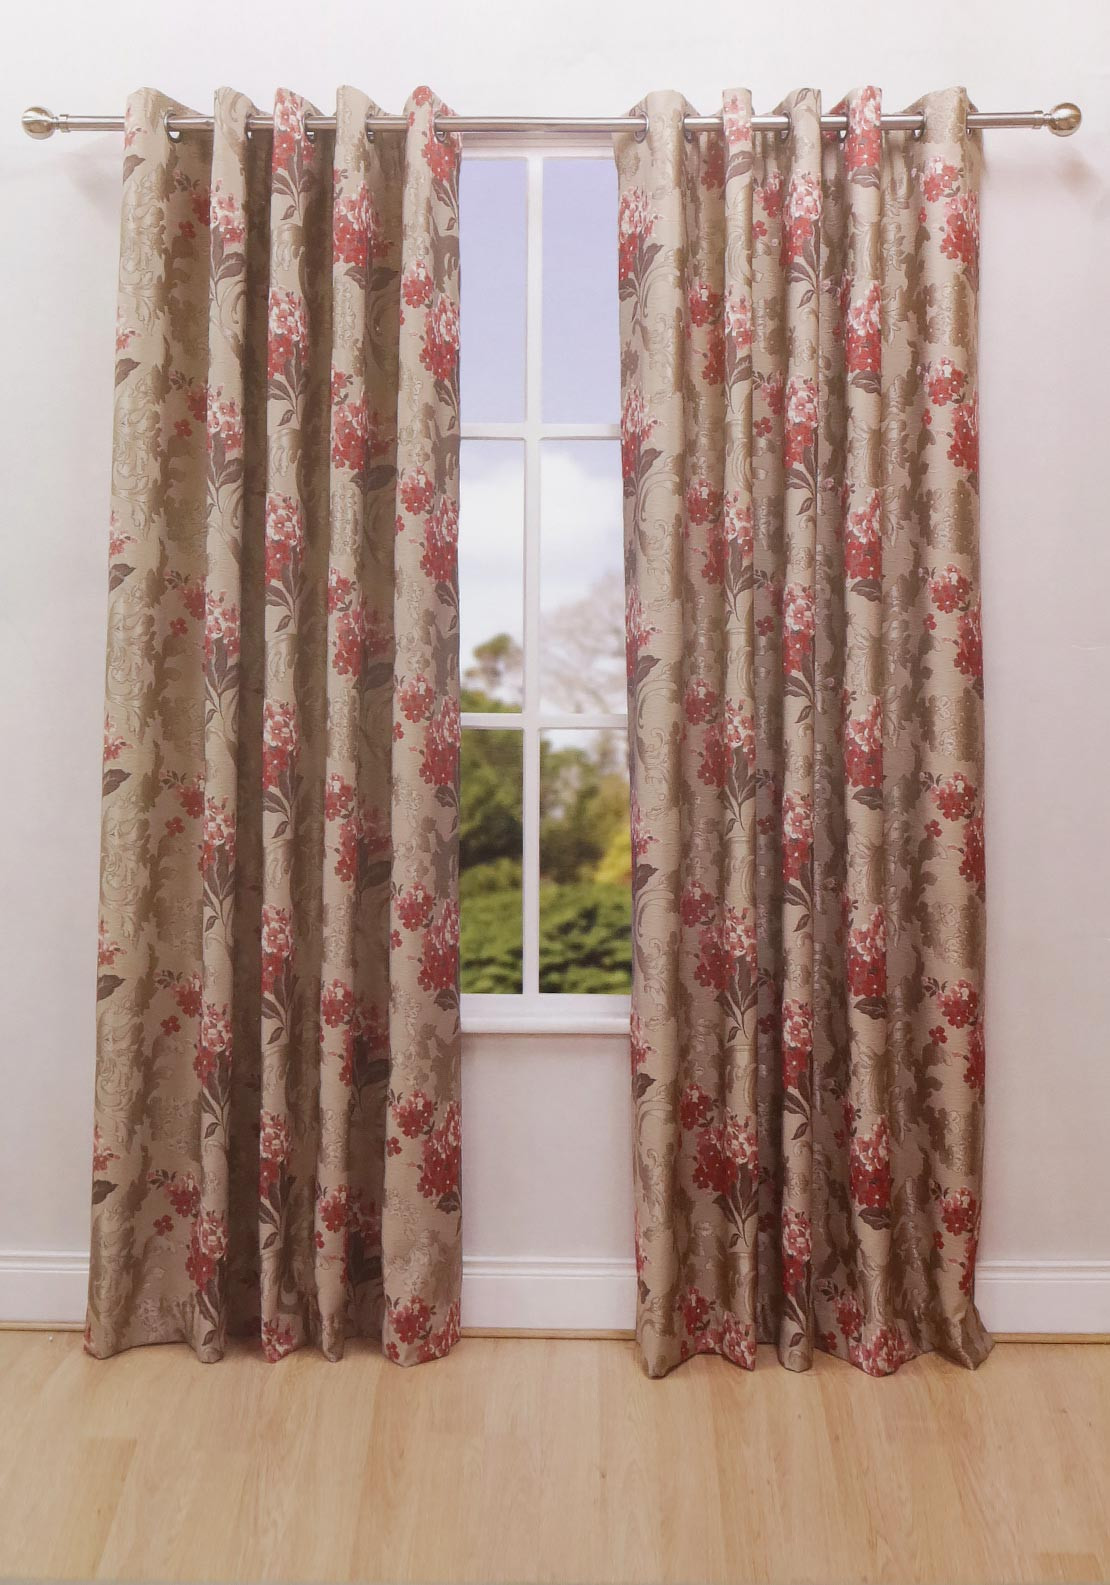 Scatterbox Pasha Ready Made Eyelet Top Curtains, Red